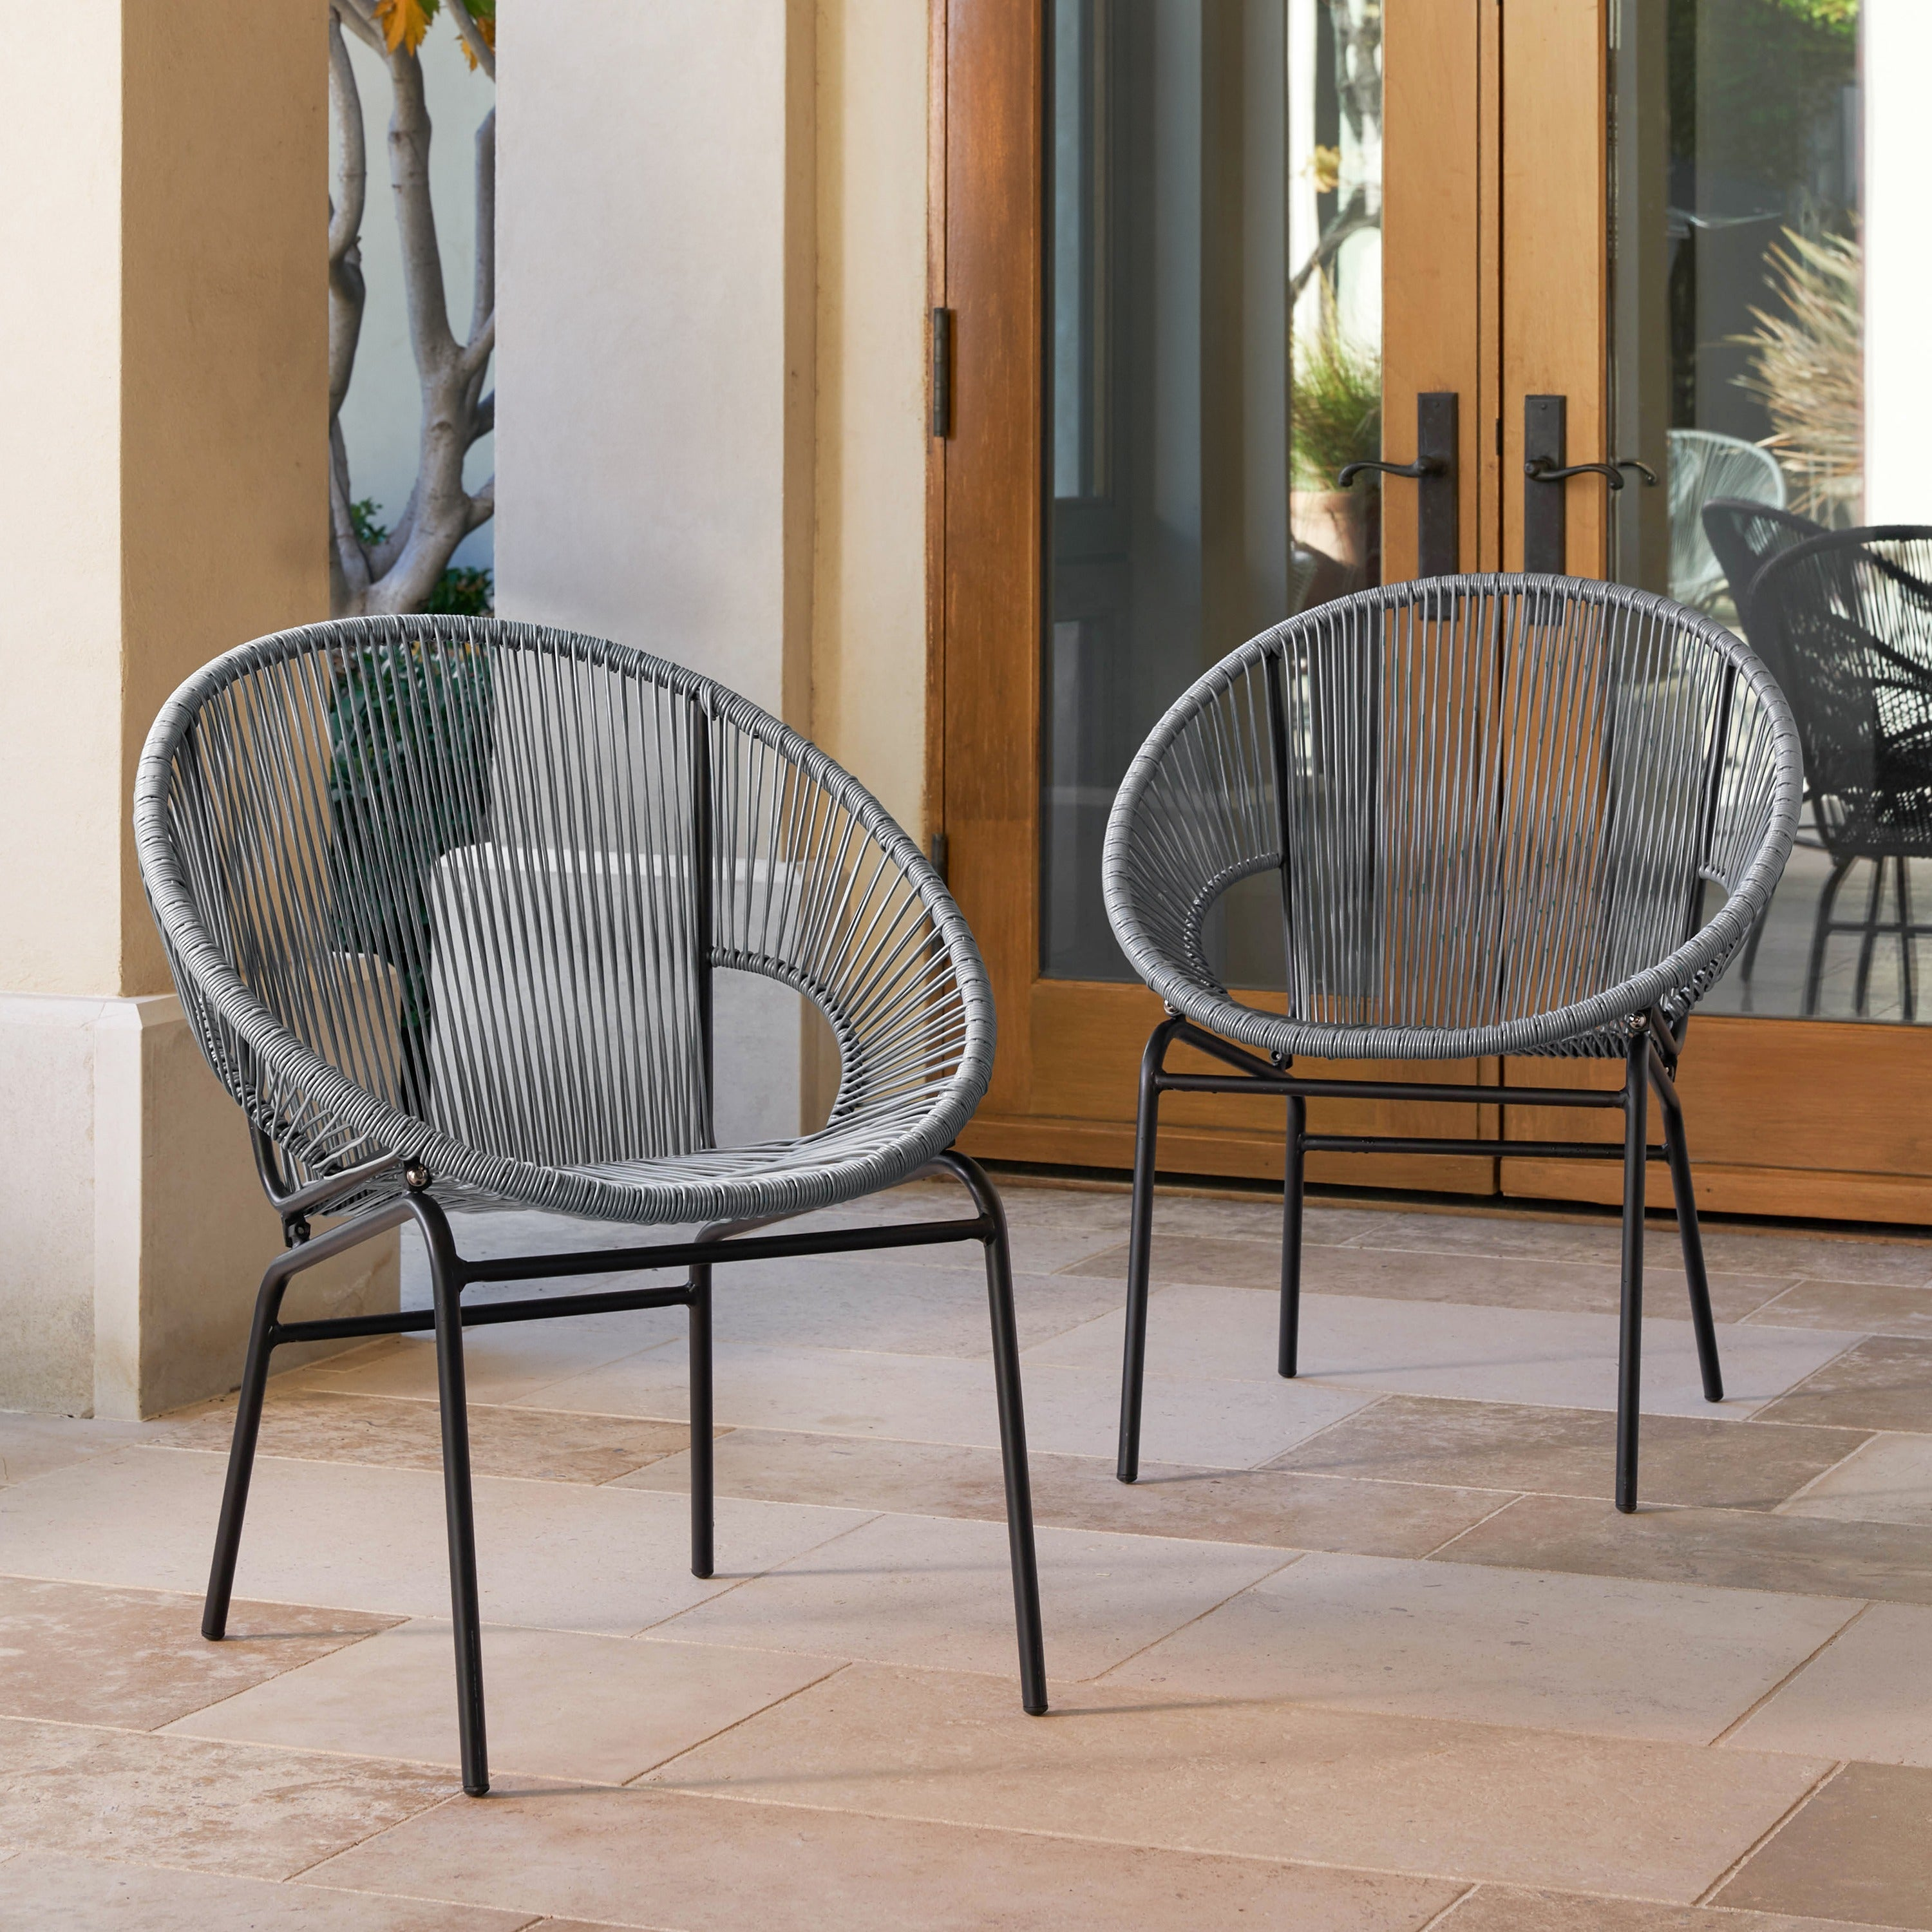 Shop corvus sarcelles woven wicker patio chairs set of 2 on sale free shipping today overstock 17805619